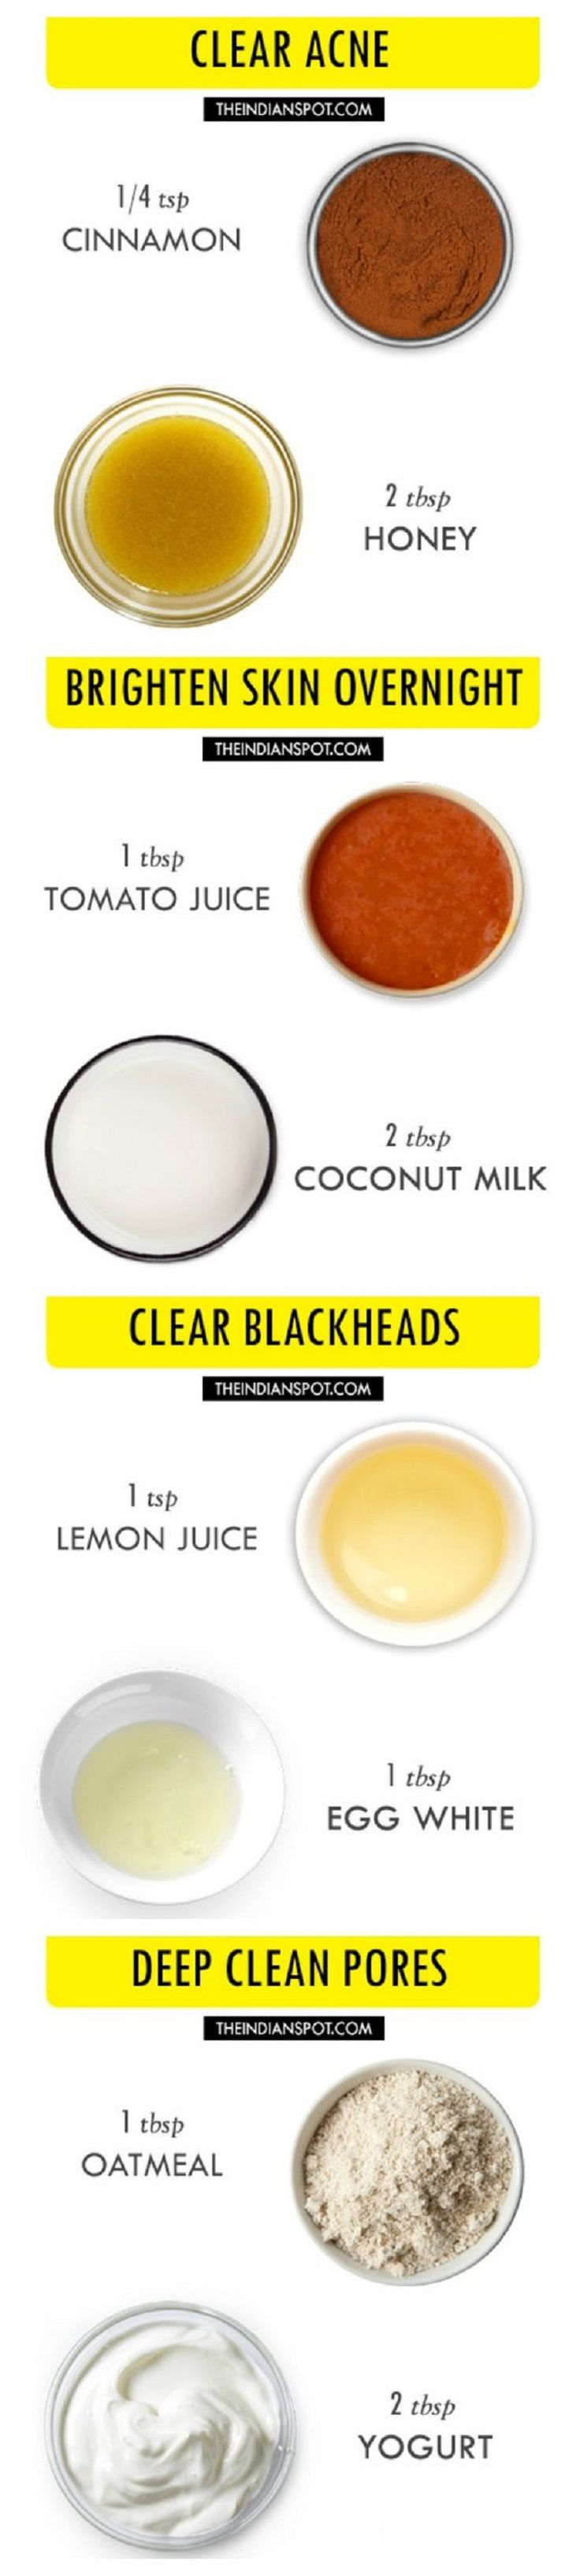 16 Top DIY Face Masks For Glowing Skin That You Can Make At Home 16 Top DIY Face Masks For Glowing Skin That You Can Make At Home new picture